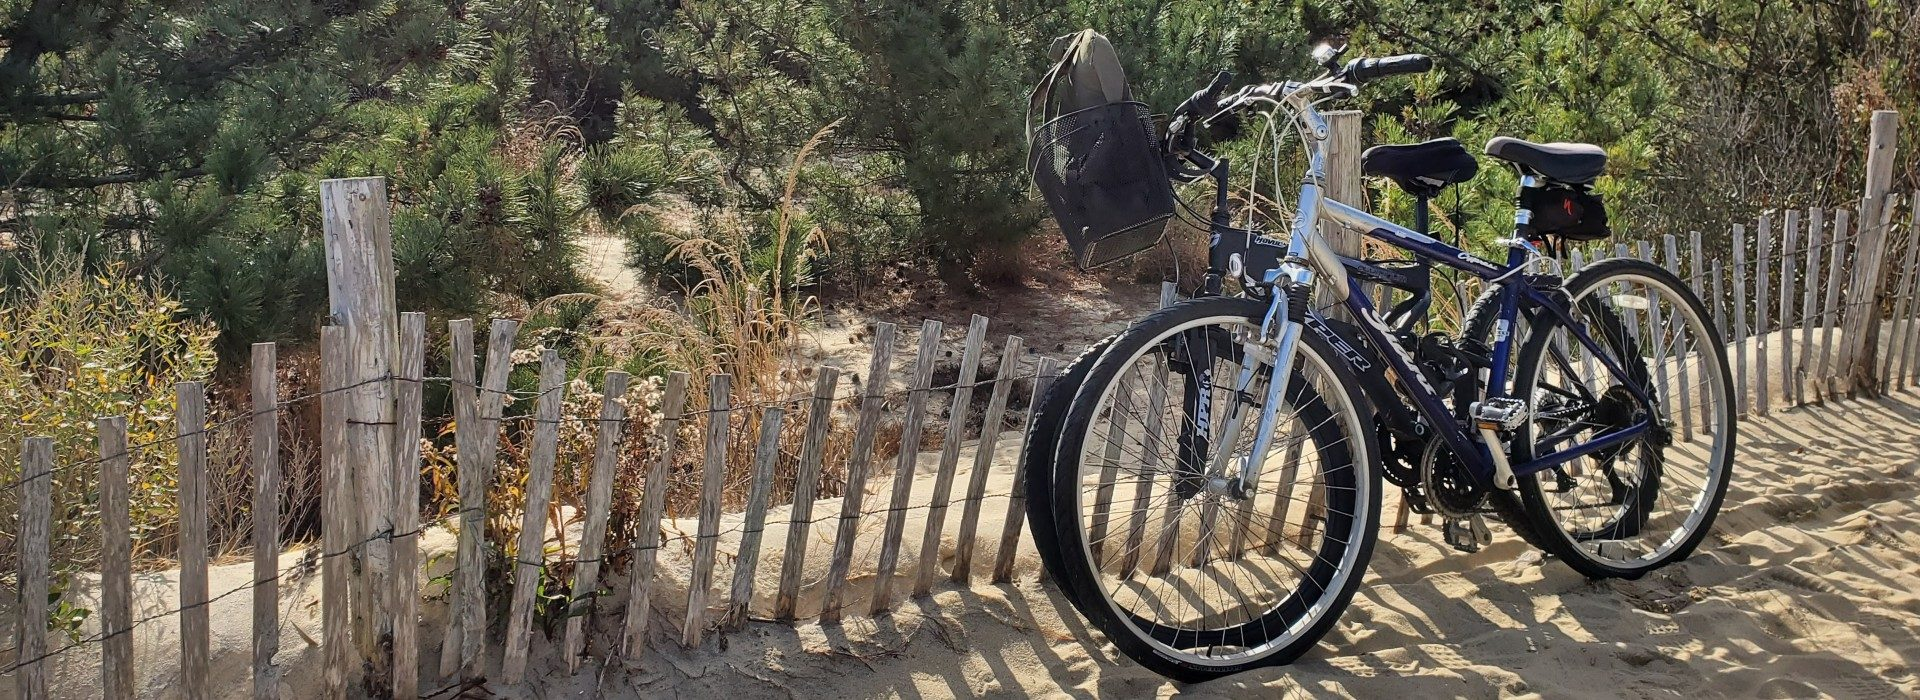 2 bikes, black and blue in the sand on walk way to beach